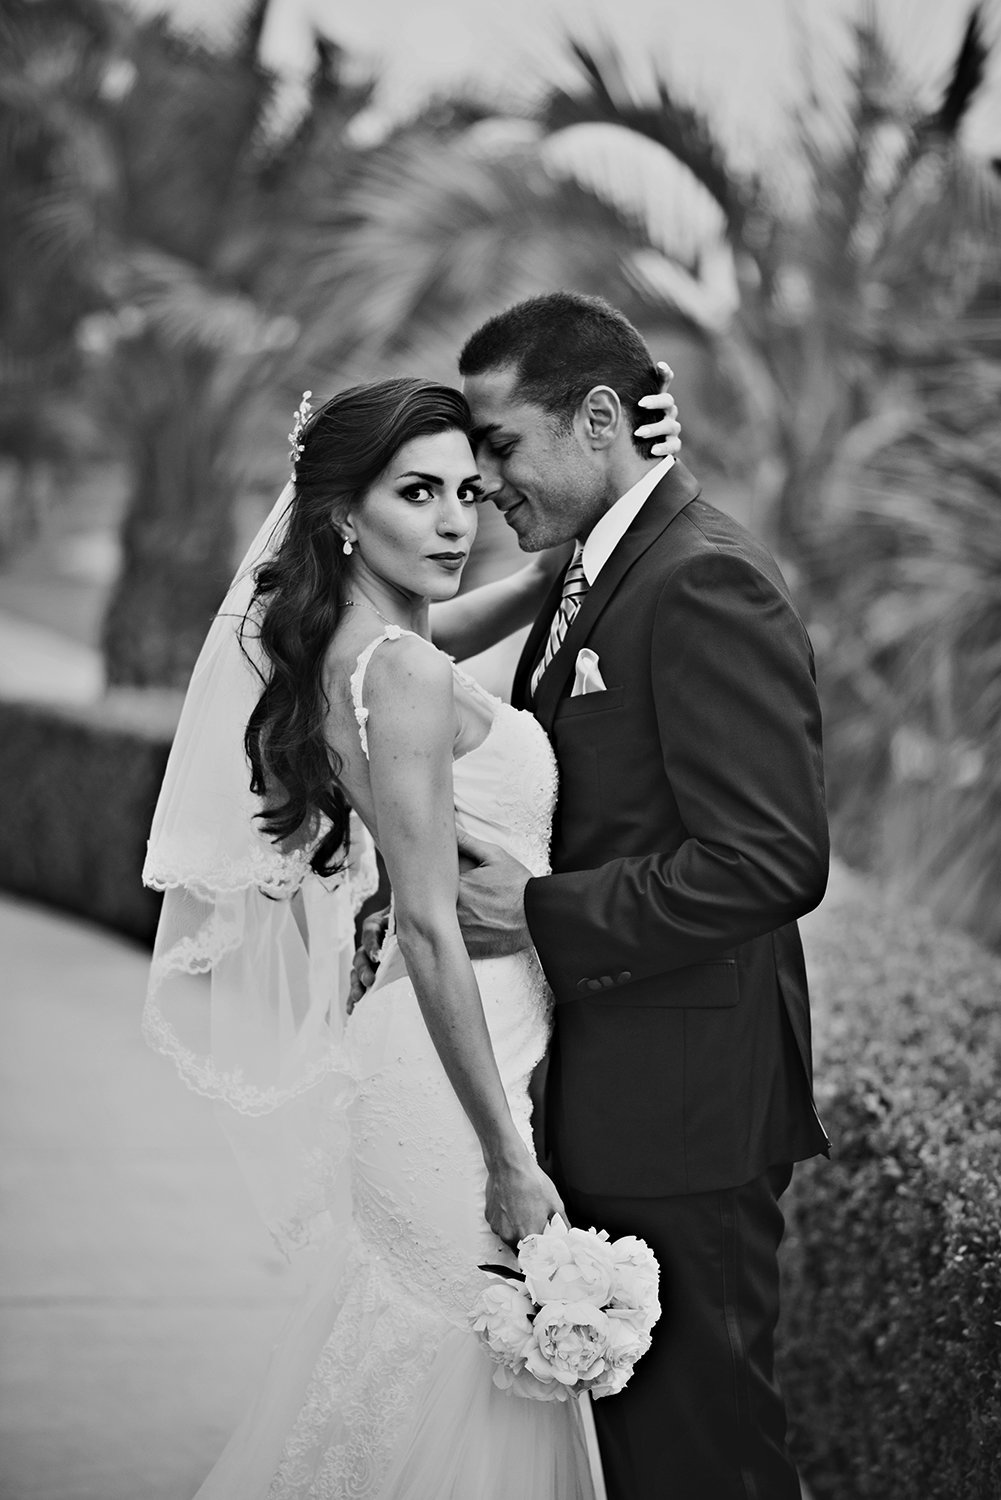 Striking black and white wedding portrait of a Persian Bride and Groom